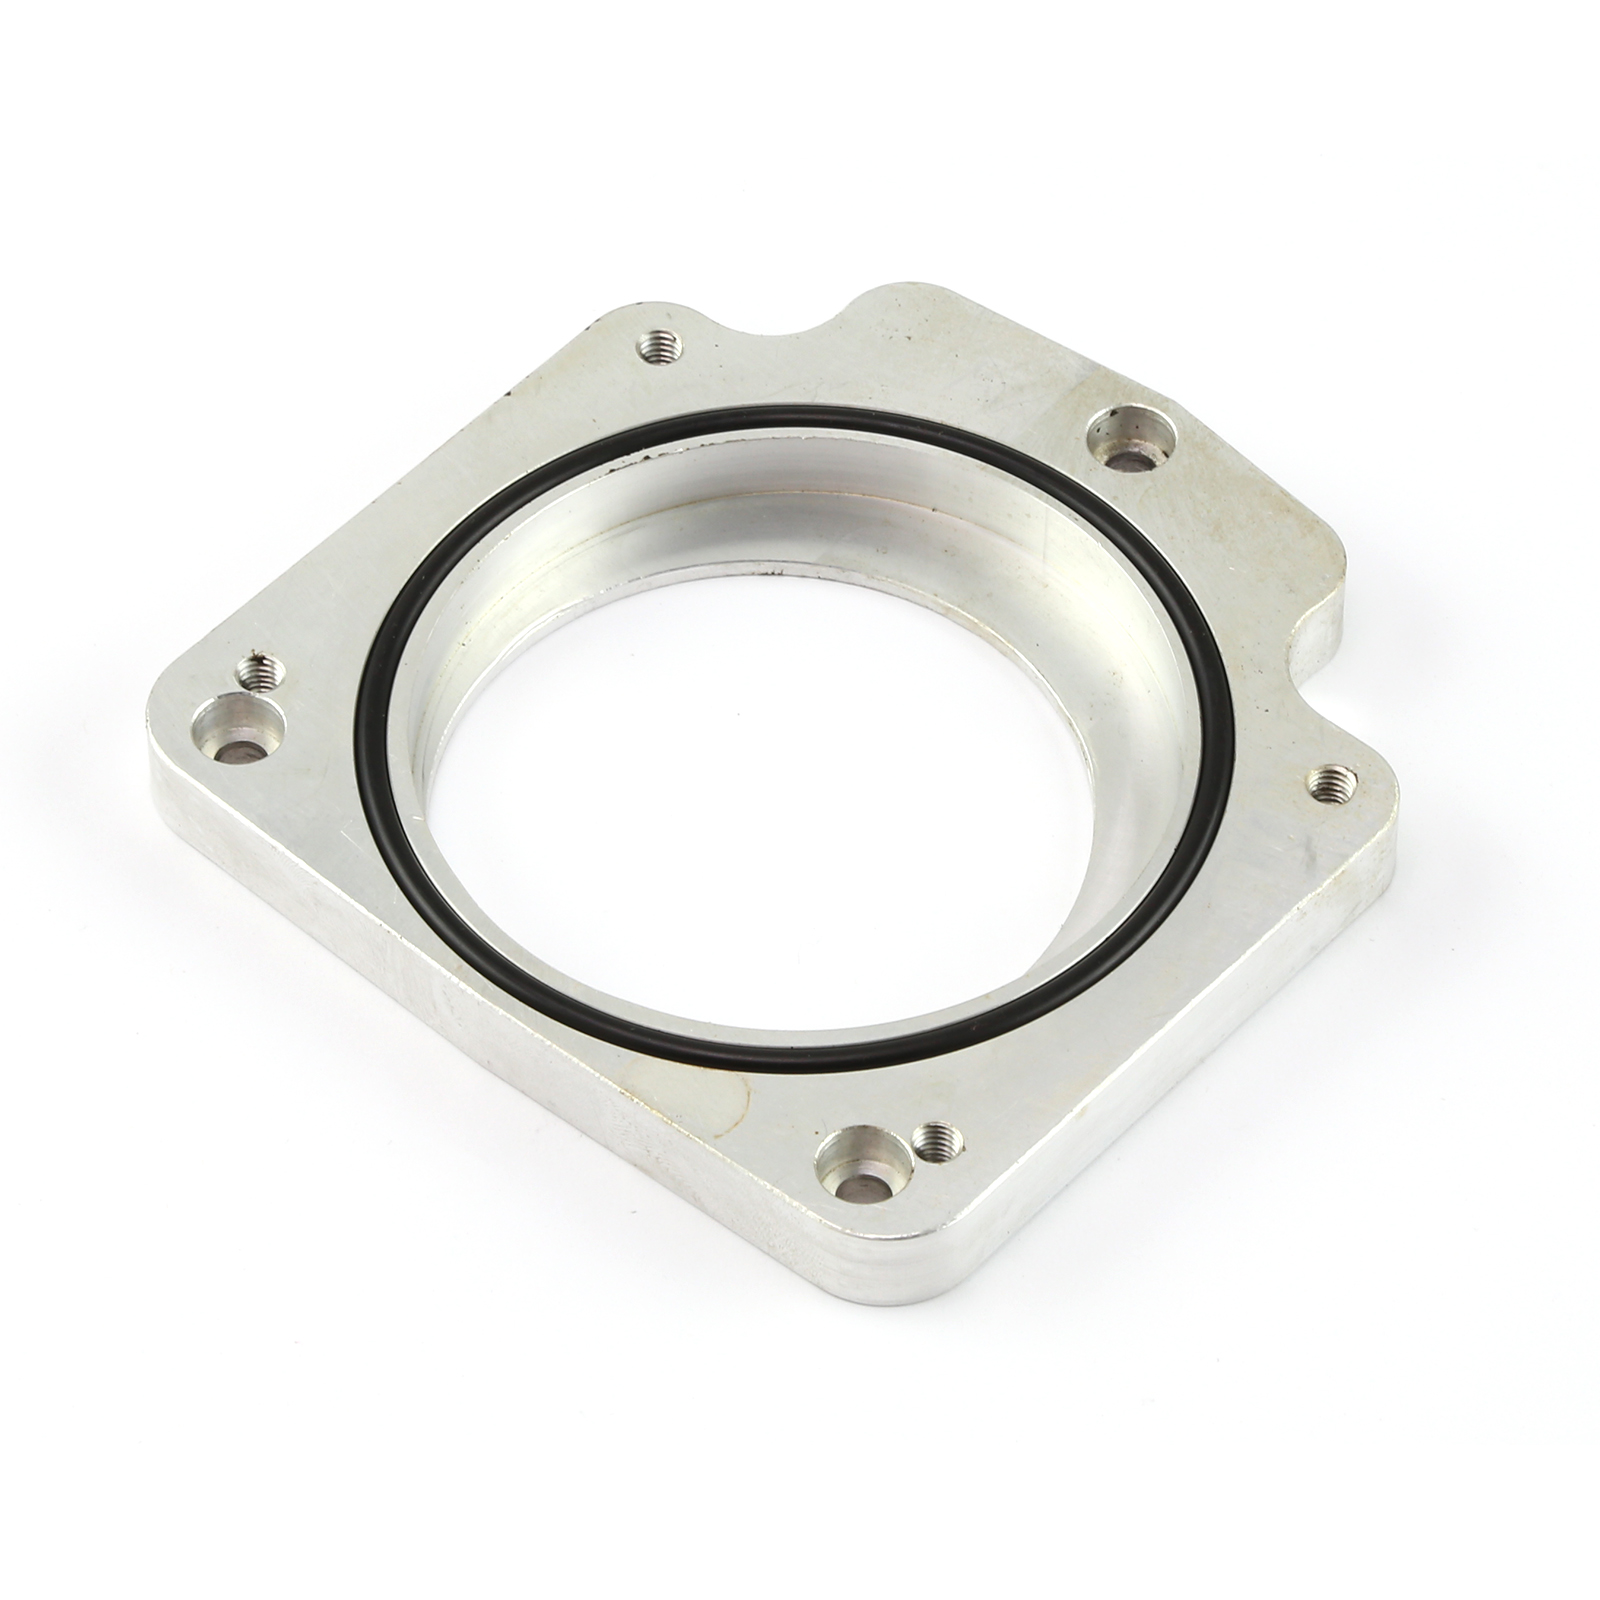 Billet Aluminum LS1 TO LS2 (3 Bolt to 4 Bolt) Throttle Body Adapter Spacer